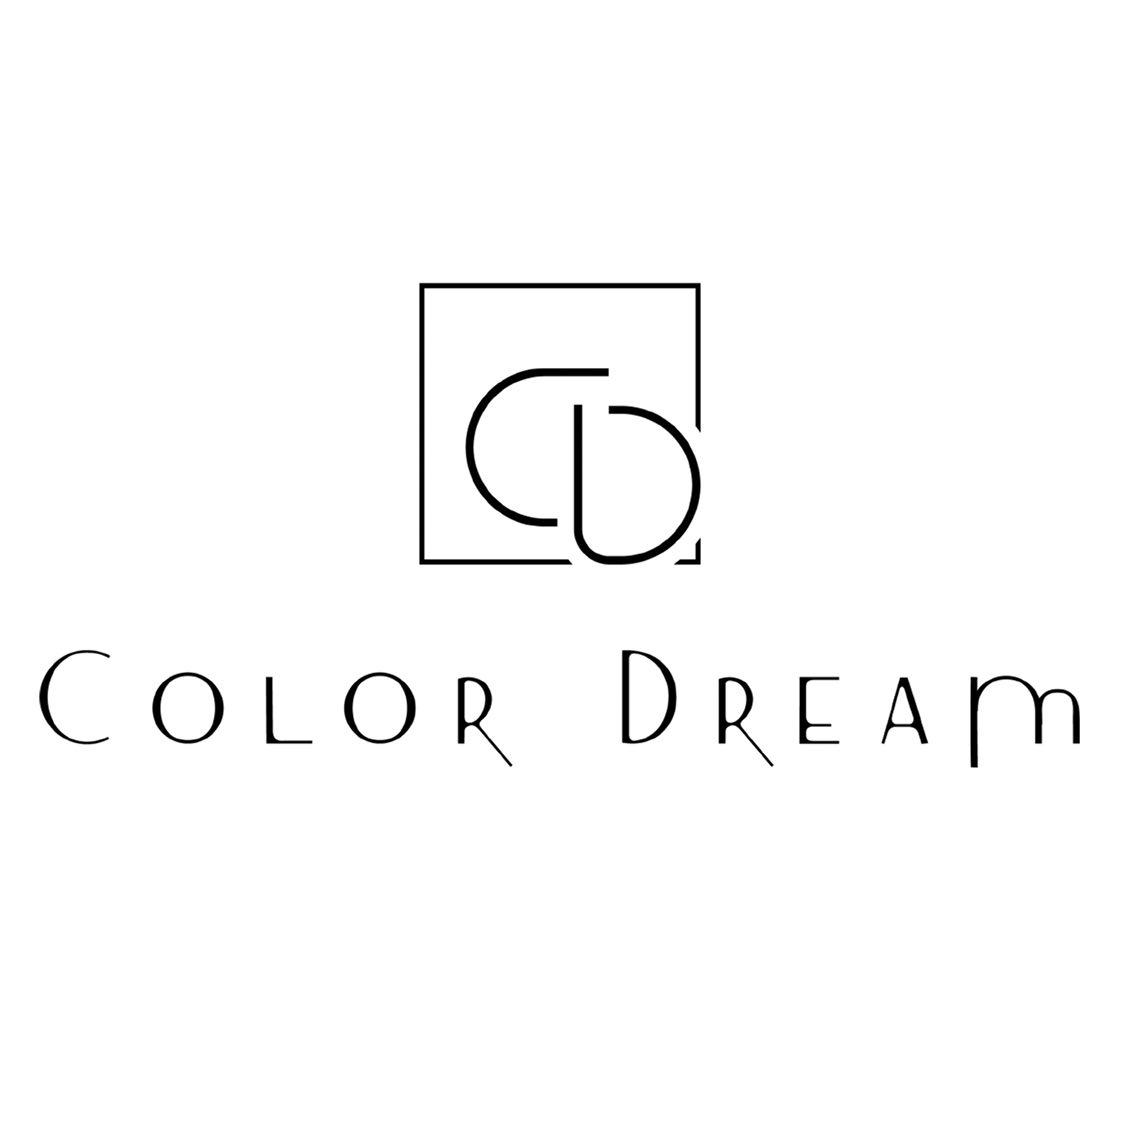 ColorDream美学影像